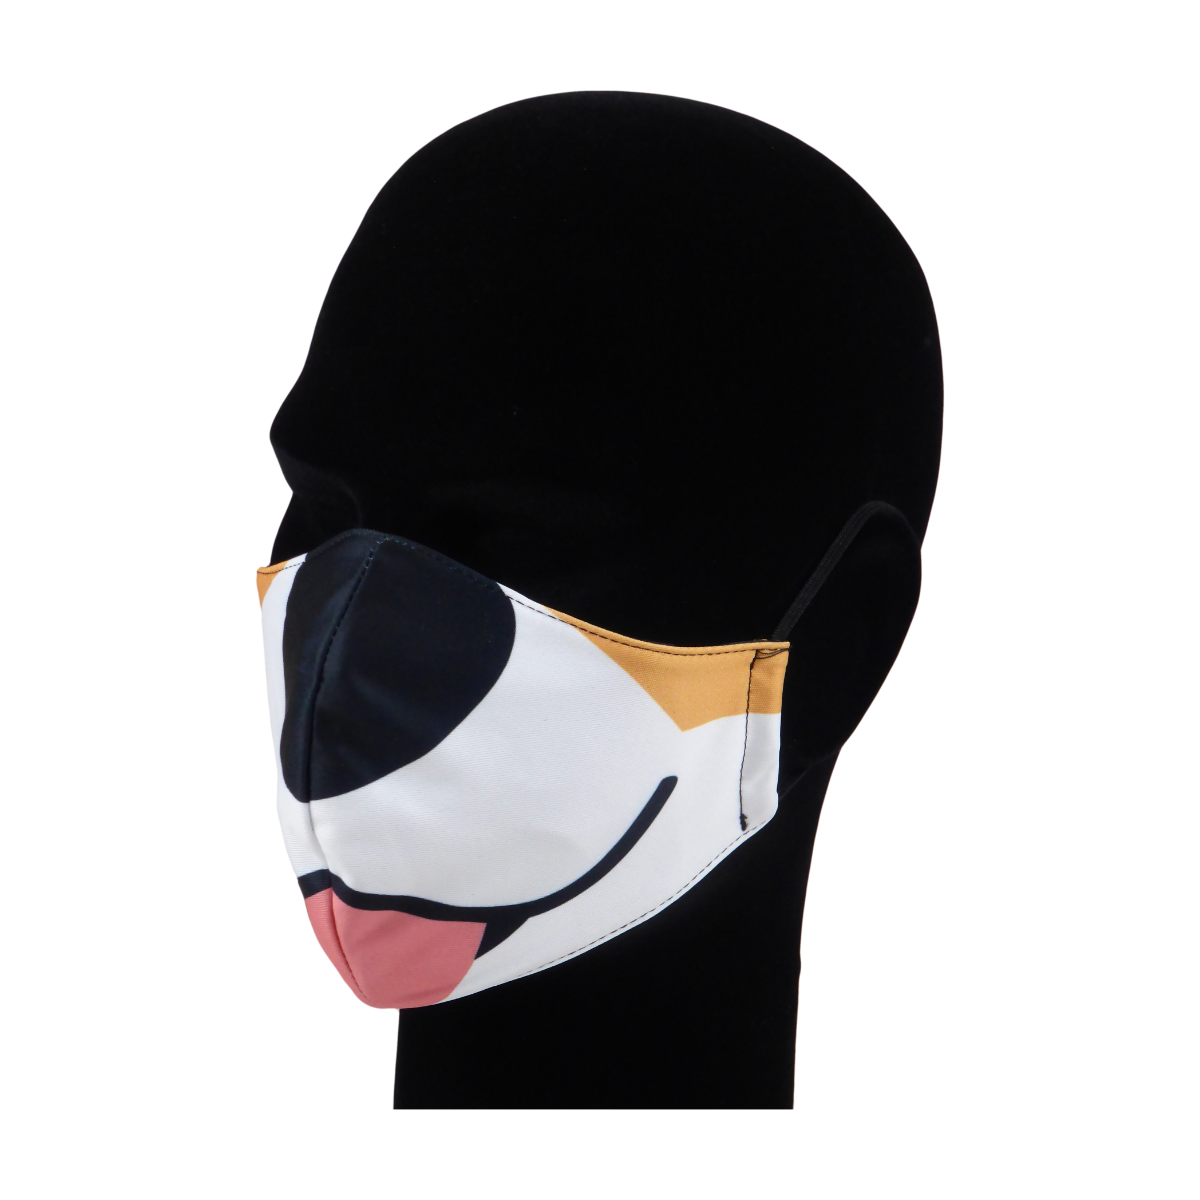 King Cobra Store 100% polyester mouth and face mask protection against dust pollen pollution or airborne covid 19 corona viruses elastic straps comfortable breathing and wearing reusable washable inspired by cartoon dog Sgt Stubby Sergeant Stubby stray dog Bull Terrier animated film World War I American Hero most decorated dog black mouth tongue black nose animal half face mask